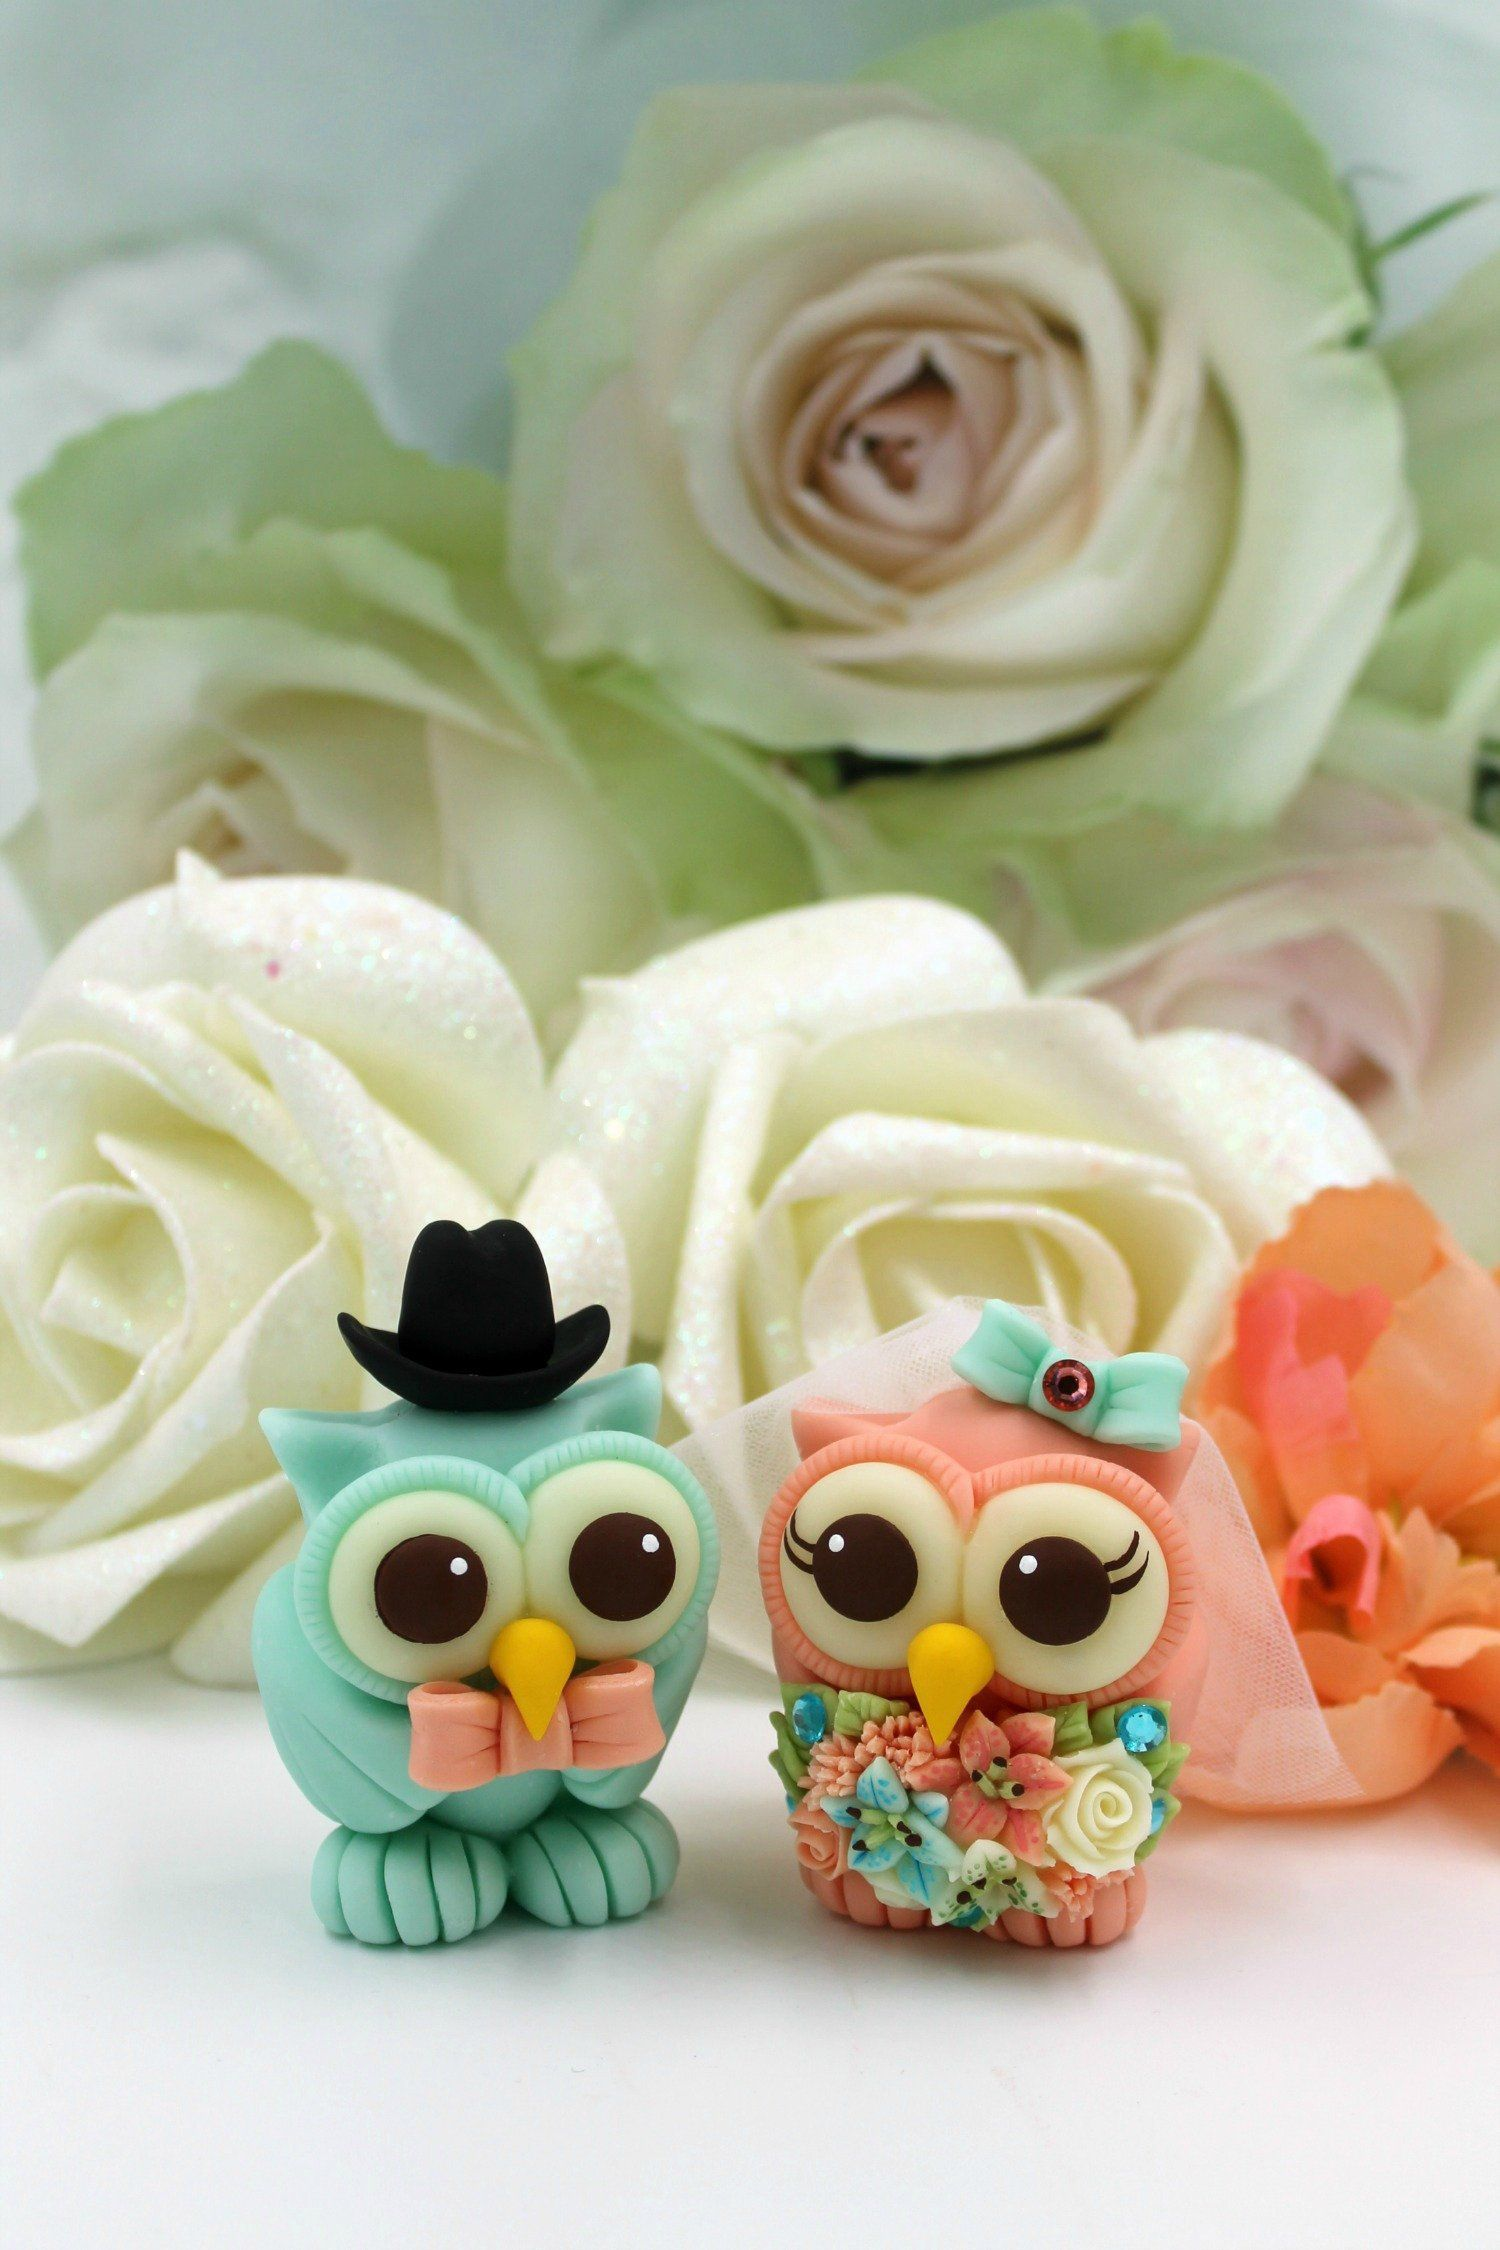 Wedding cake topper, owl cake topper, love bird cake topper, turquoise coral owls bride and groom #turquoisecoralweddings